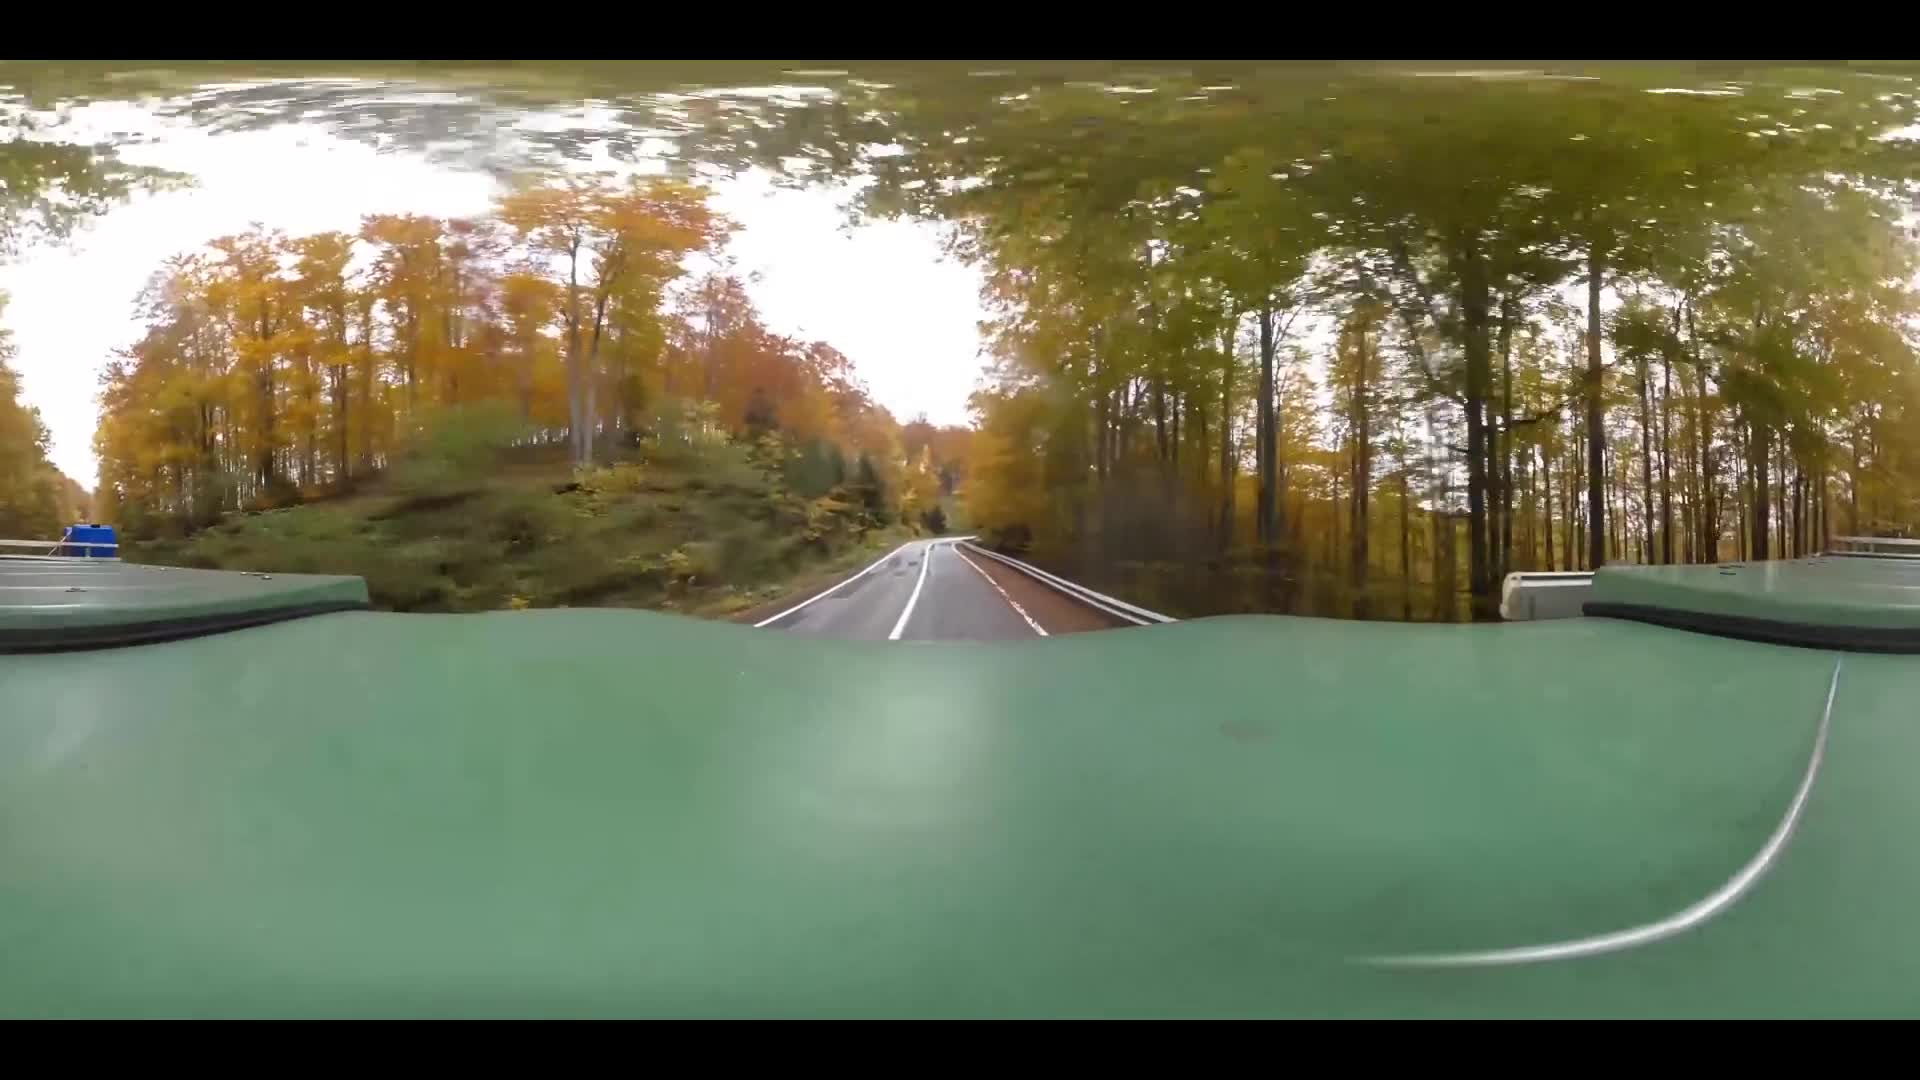 Virtual Reality 360 view from driving the Transfagarasan Highway in Romania